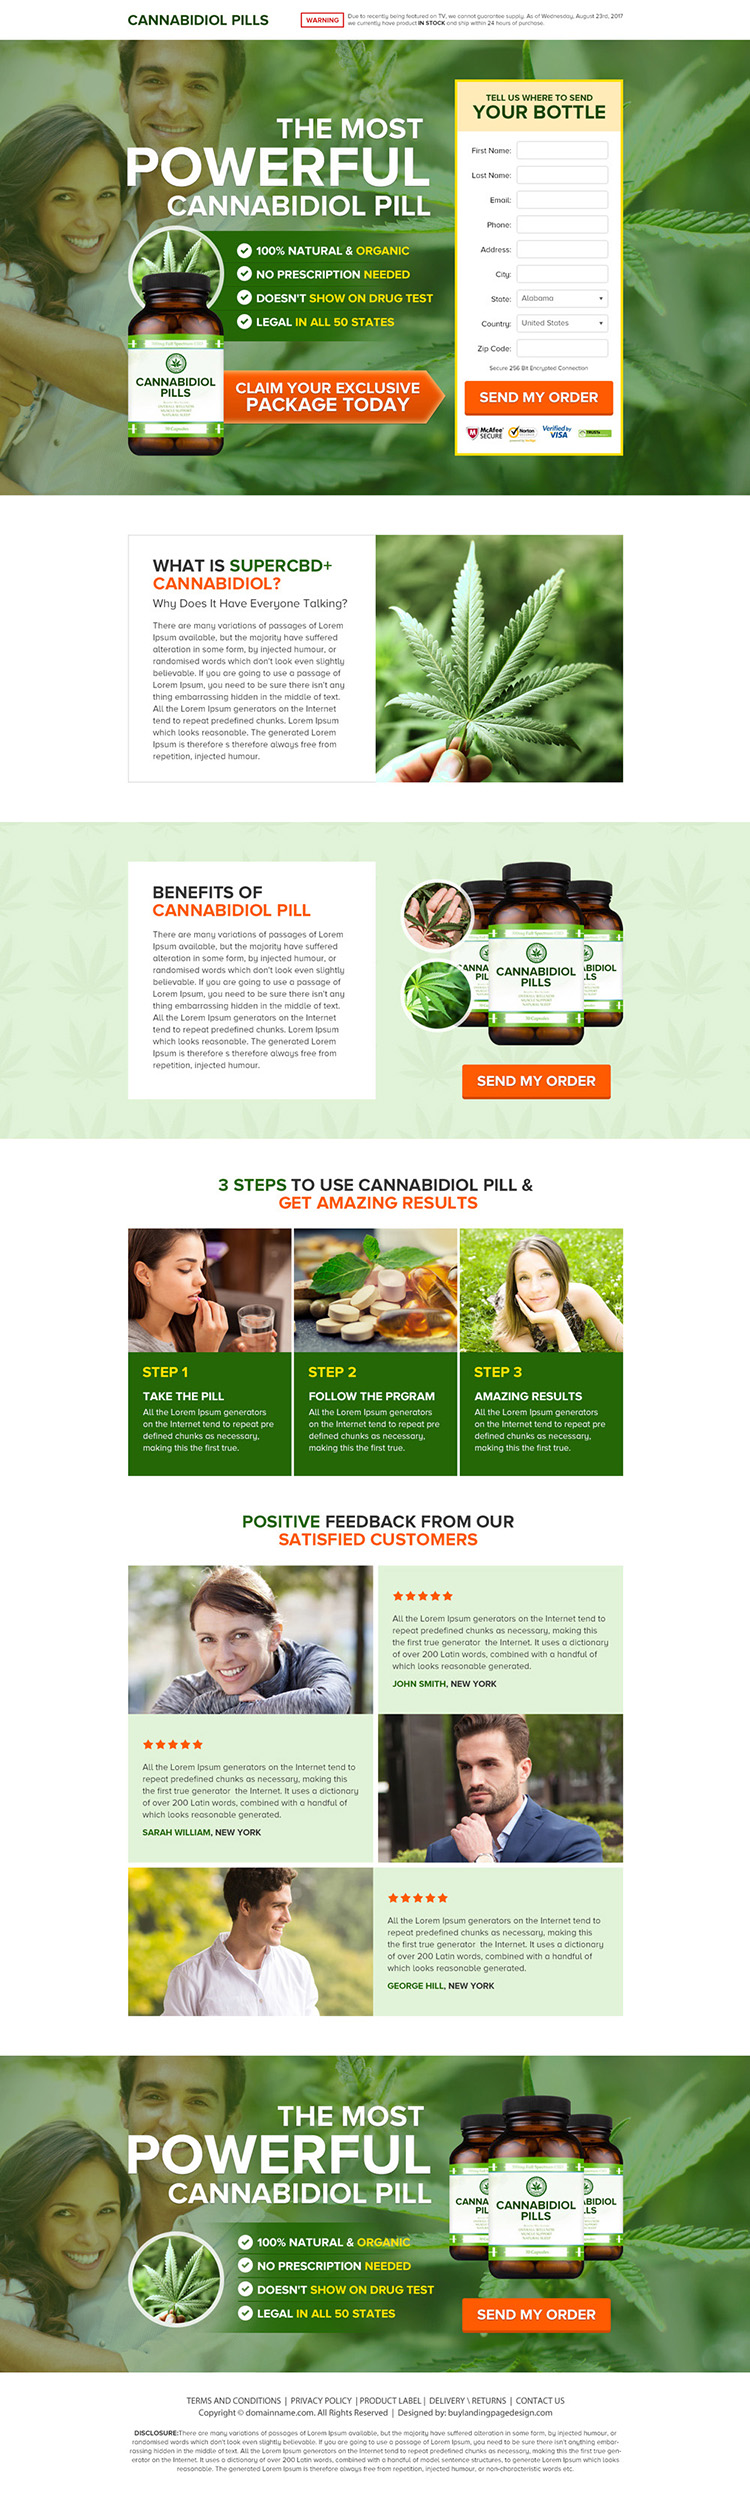 cannabidiol health supplement pills selling responsive landing page